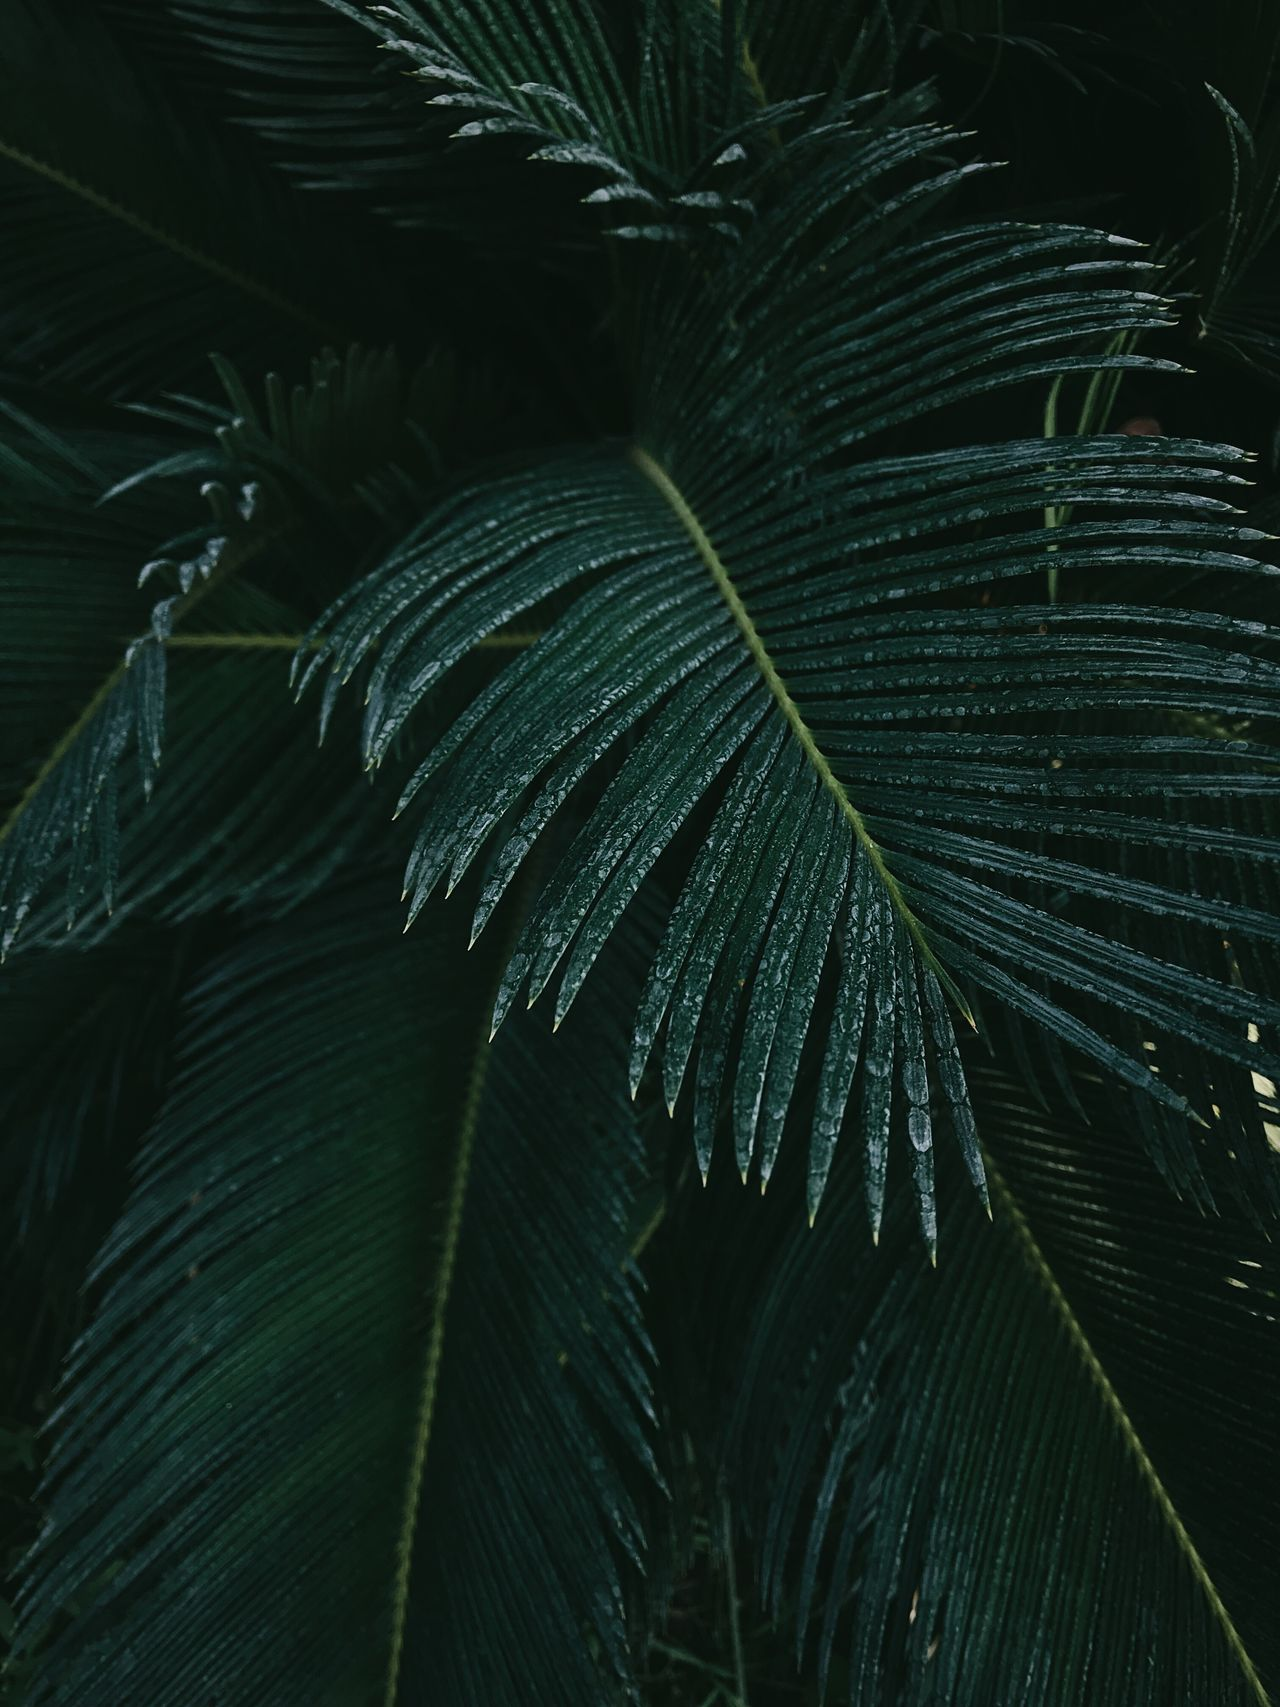 leaf Green color Nature beauty in Nature no people Freshness close-up Plant outdoors tropical fragility The Week on EyeEm